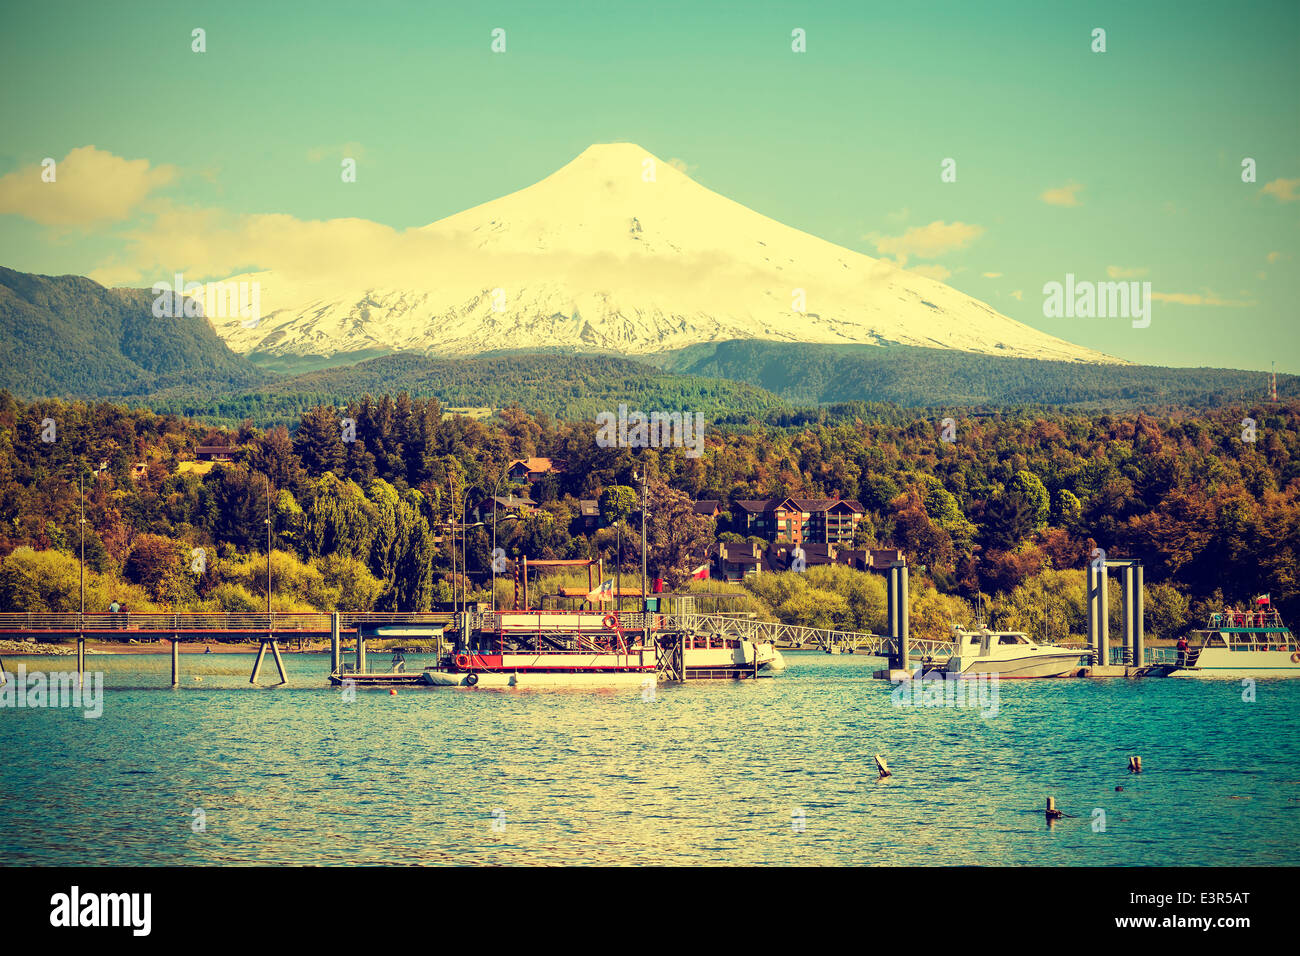 Snow covered Volcano Villarica, Chile, vintage retro style. - Stock Image